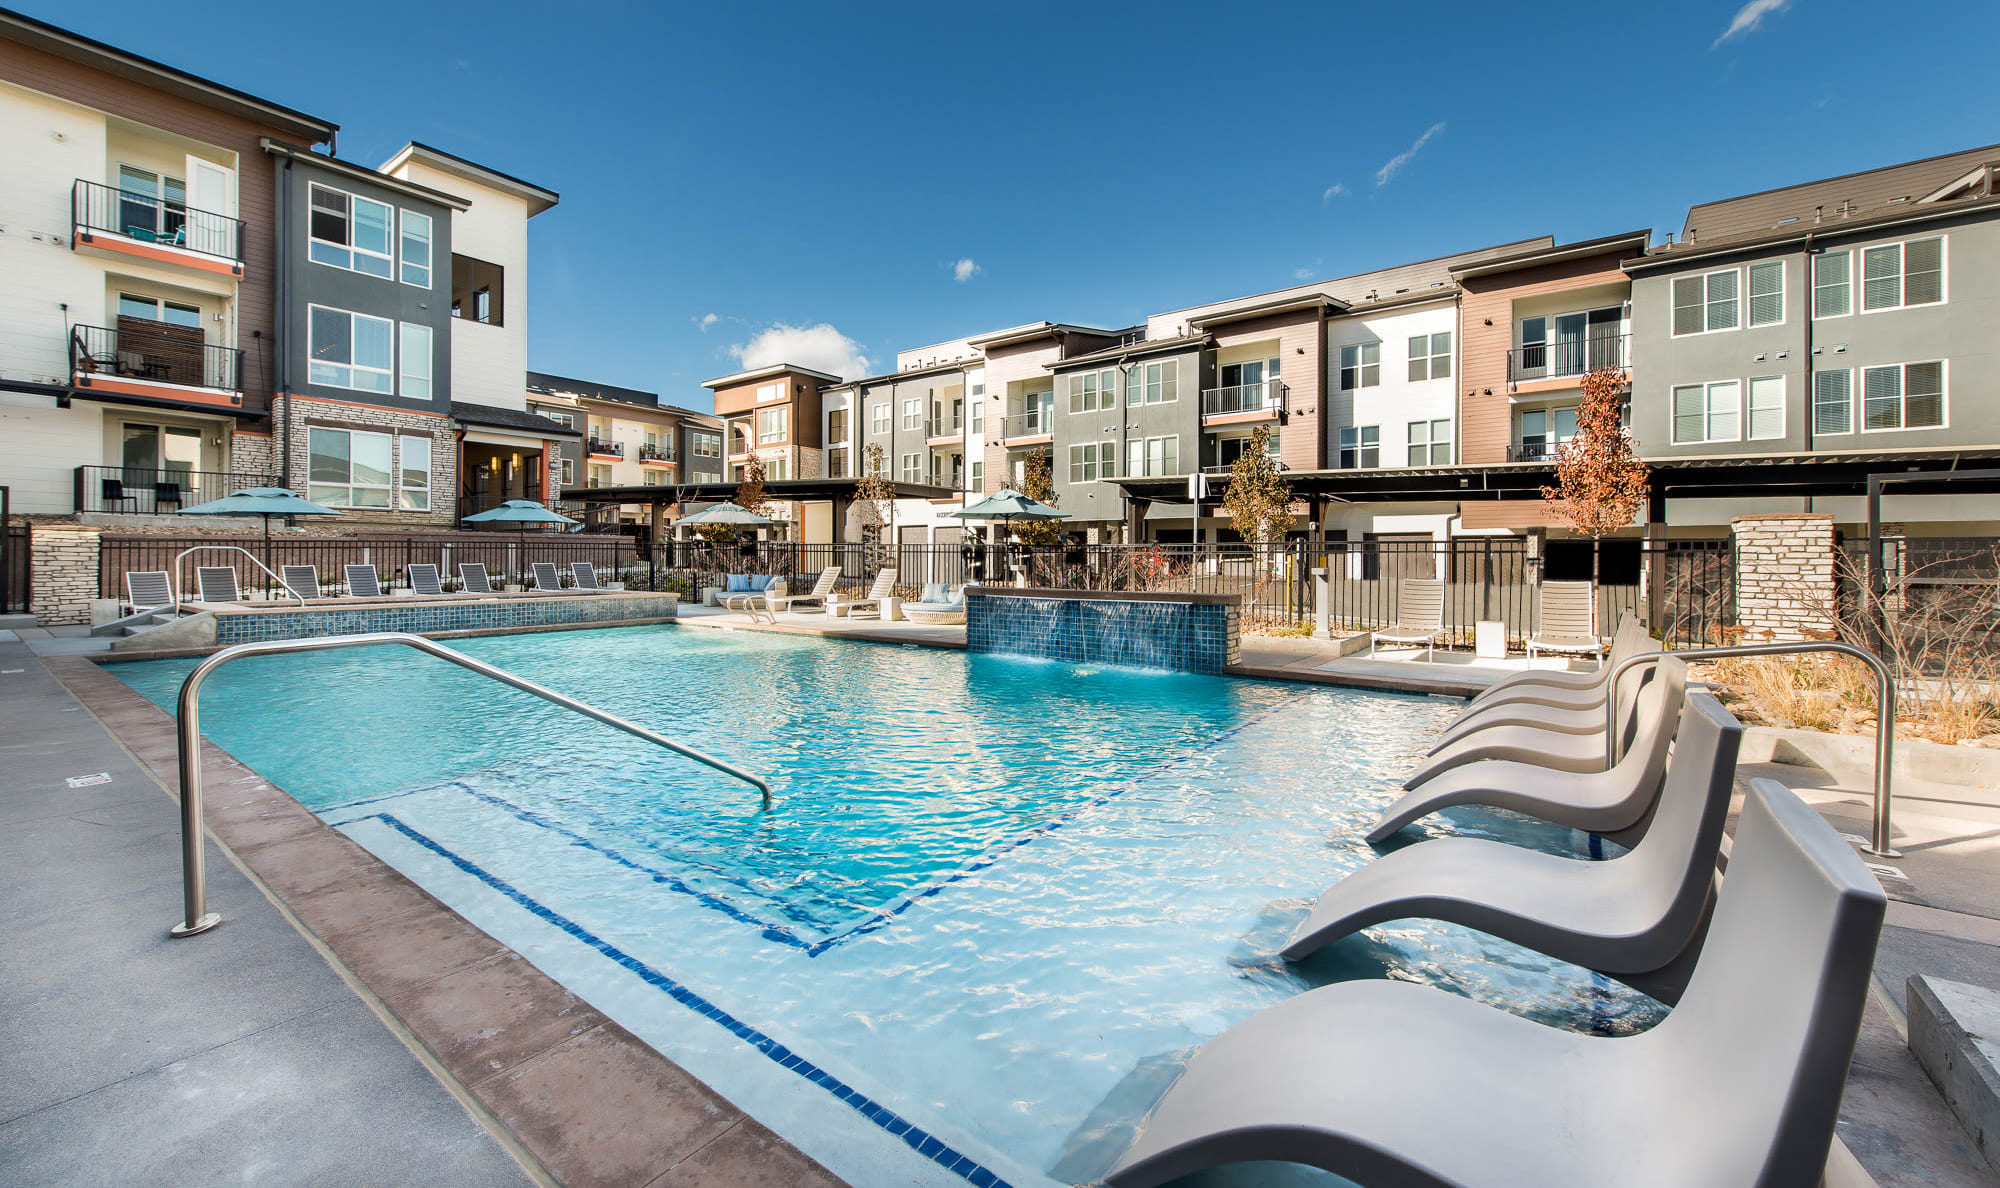 Pool side at Elevate in Englewood, Colorado